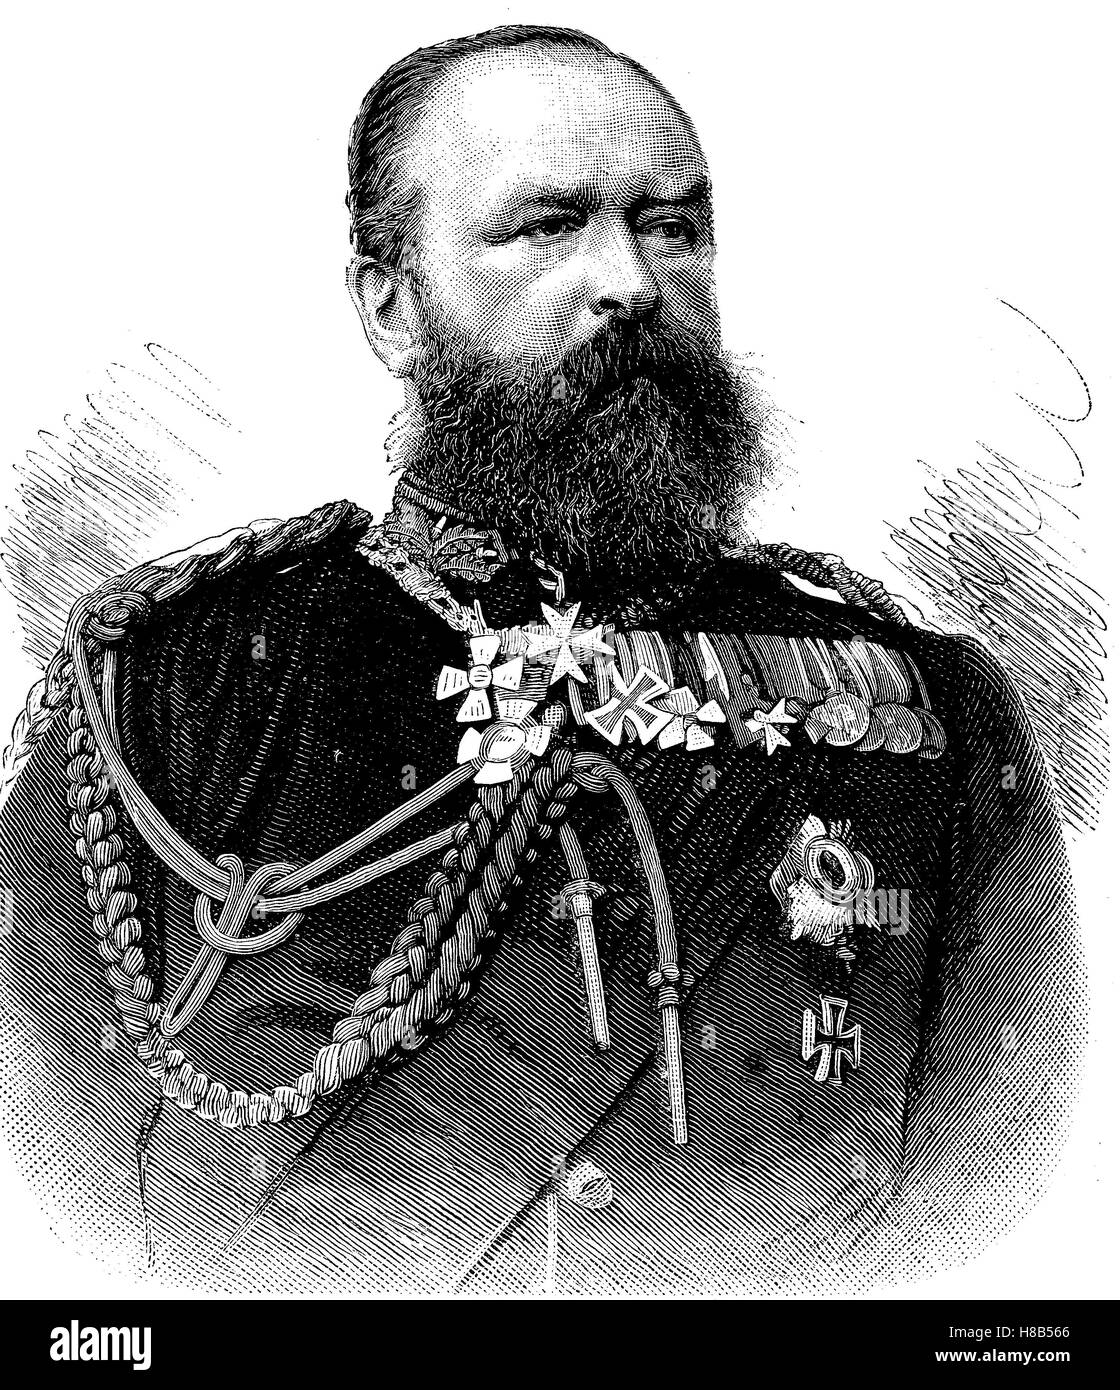 Louis IV, Friedrich Wilhelm Ludwig Karl, 12 September 1837 - 13 March 1892, was the Grand Duke of Hesse and by Rhine, - Stock Image